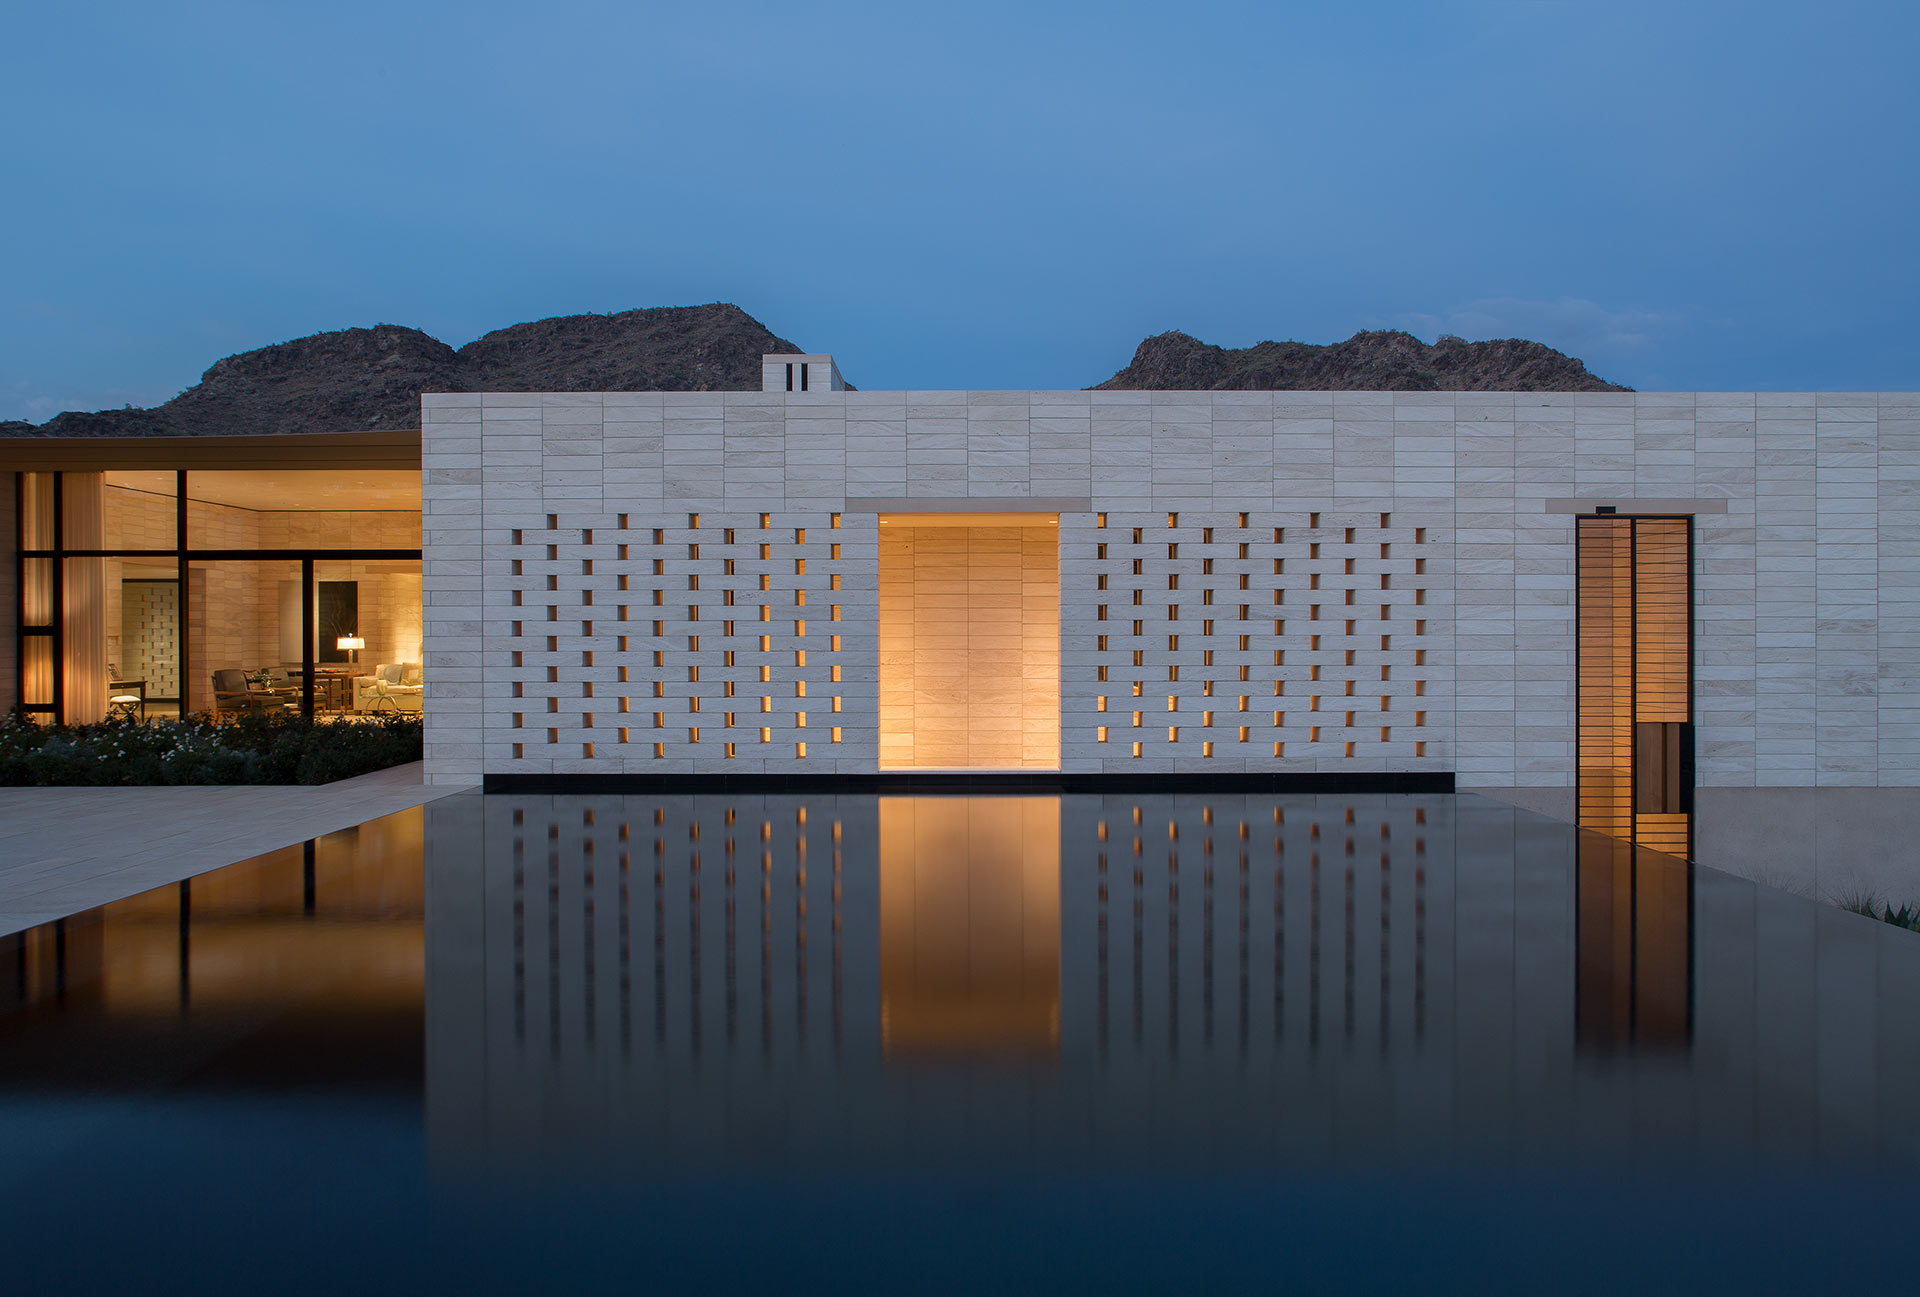 View of the stone villa by night with illuminated galvanized sliding panels